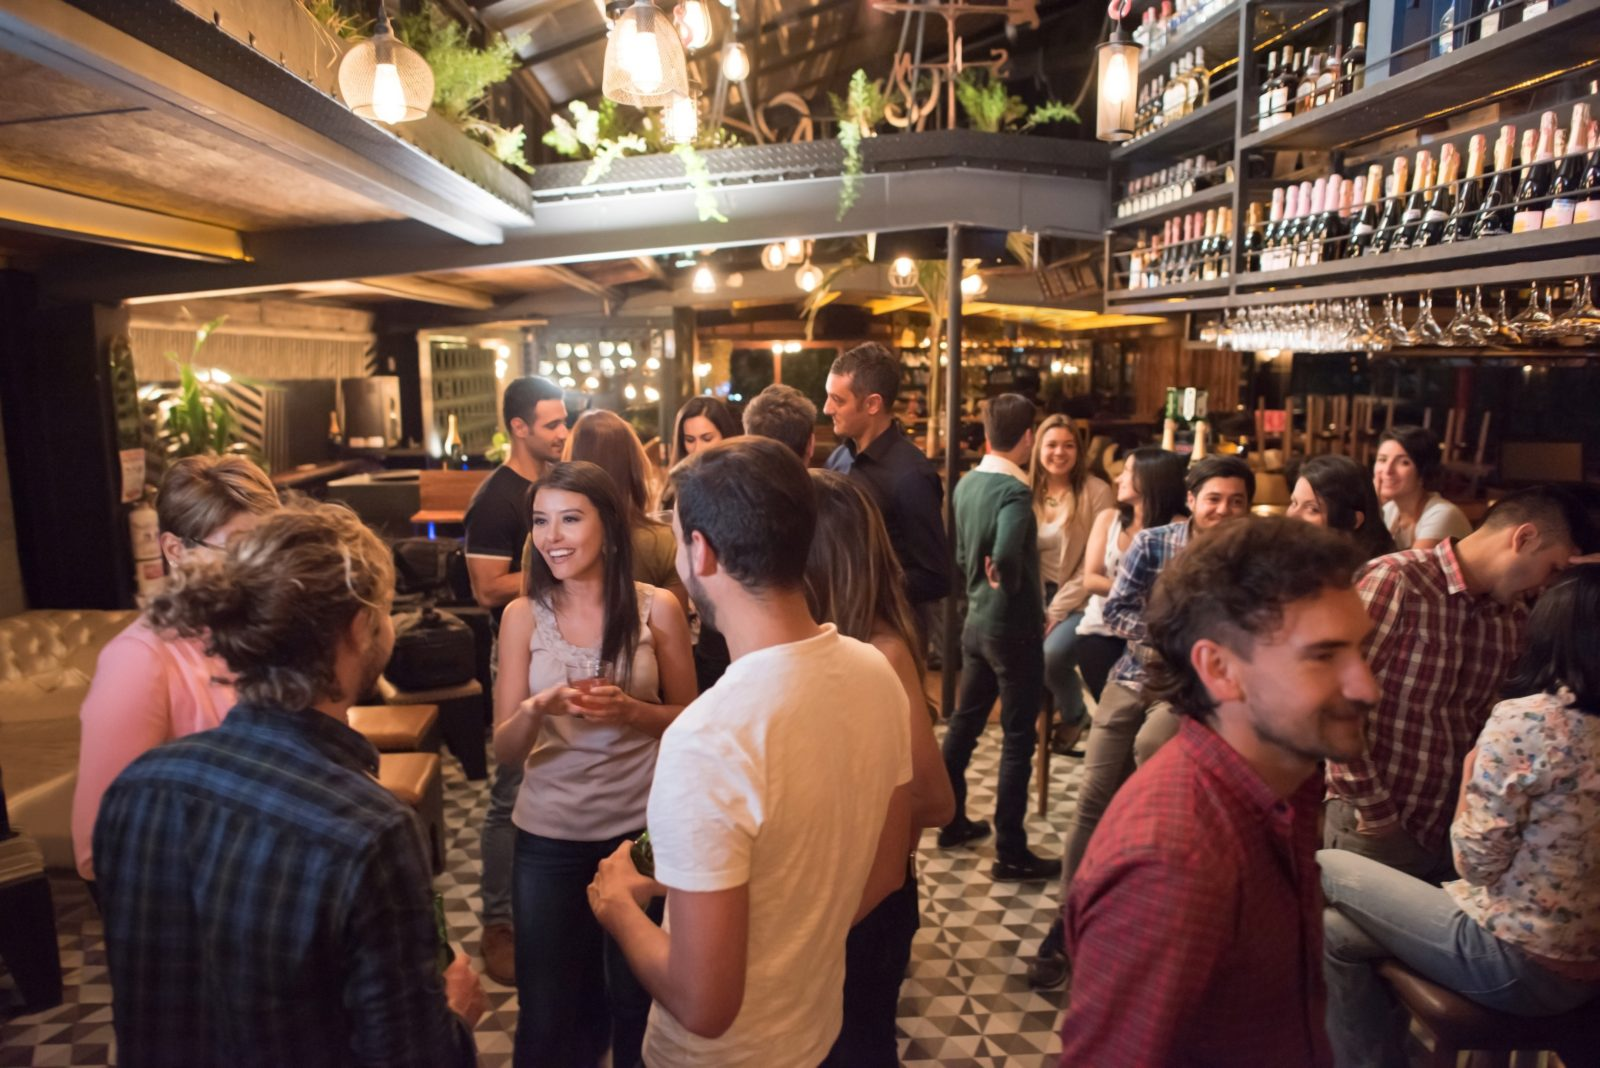 Noise from a bar can cause concerns for neighbours and be too loud for patrons